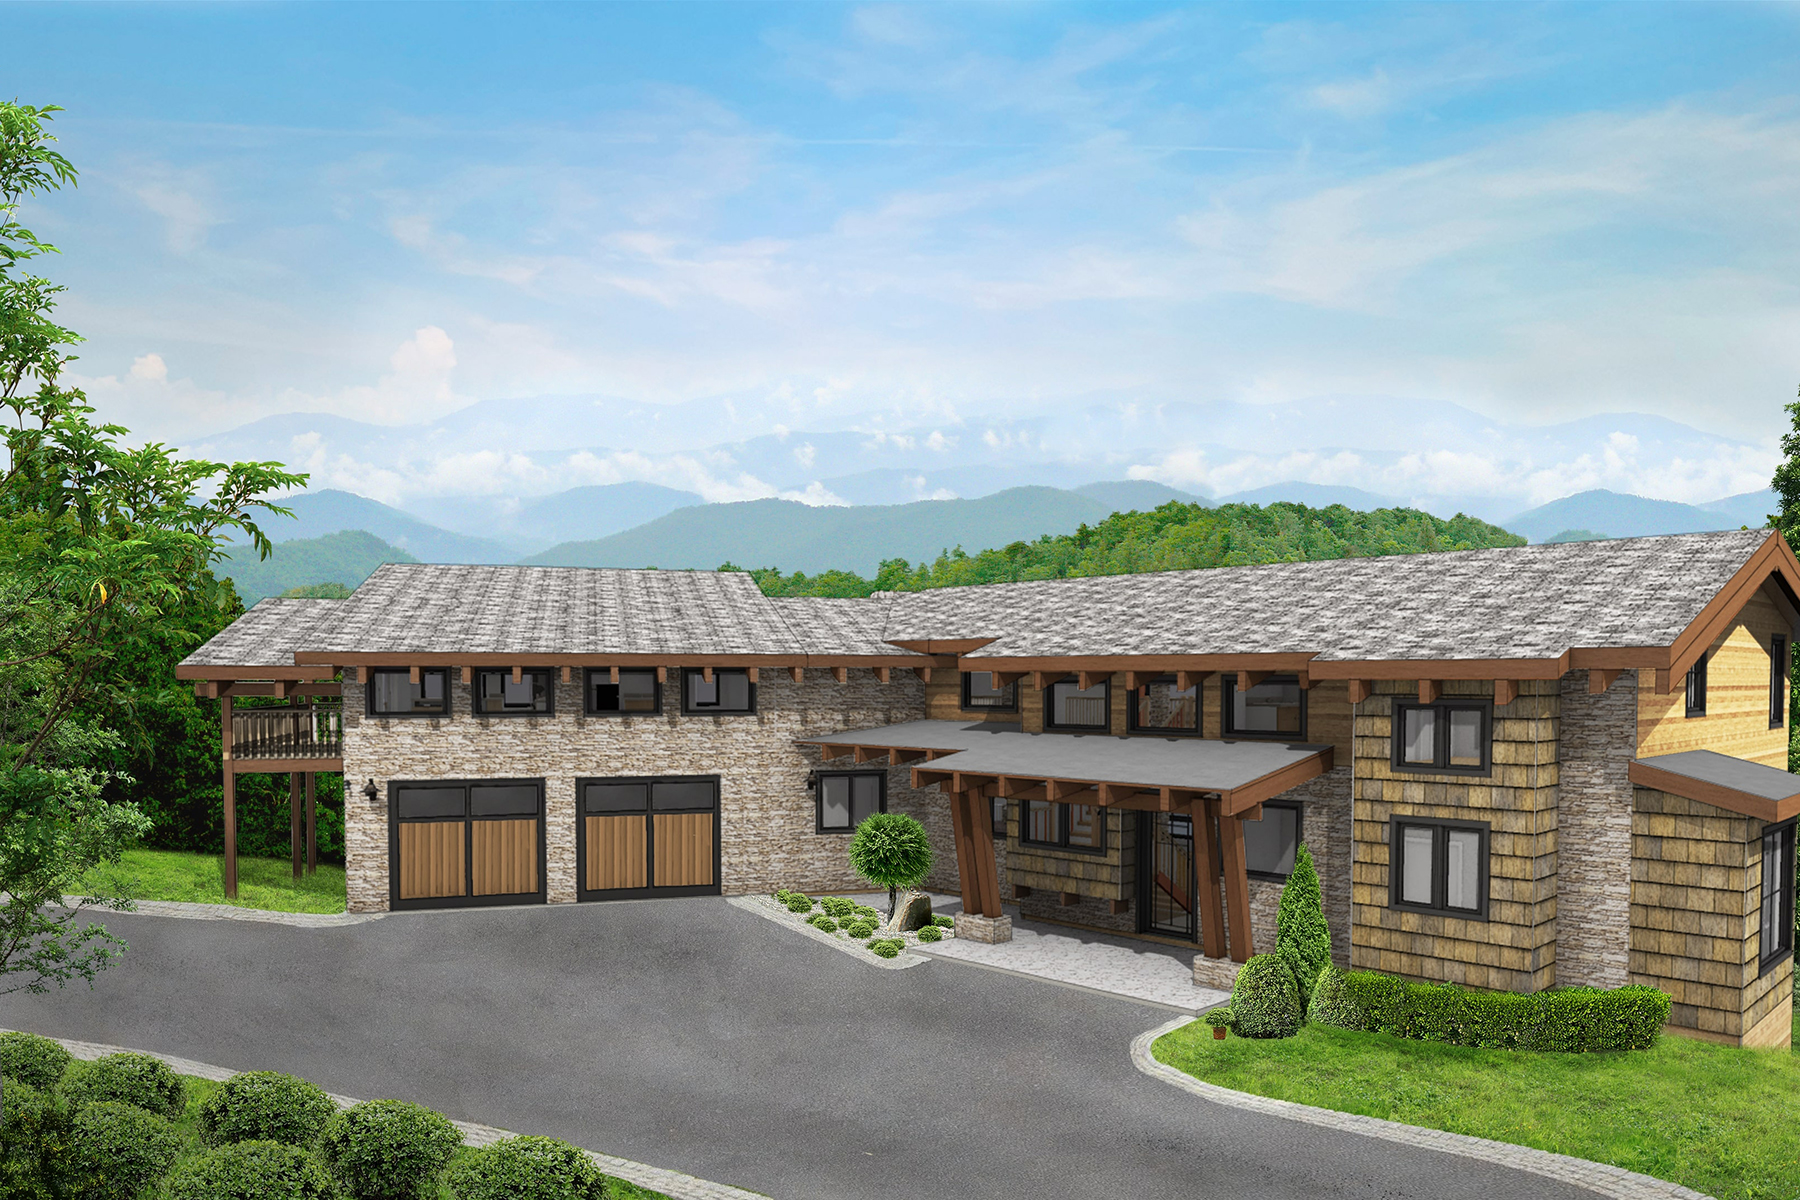 Single Family Homes for Active at BLUE RIDGE MOUNTIAN CLUB - BOONE 329 and 331 Pepperroot Rd Boone, North Carolina 28607 United States